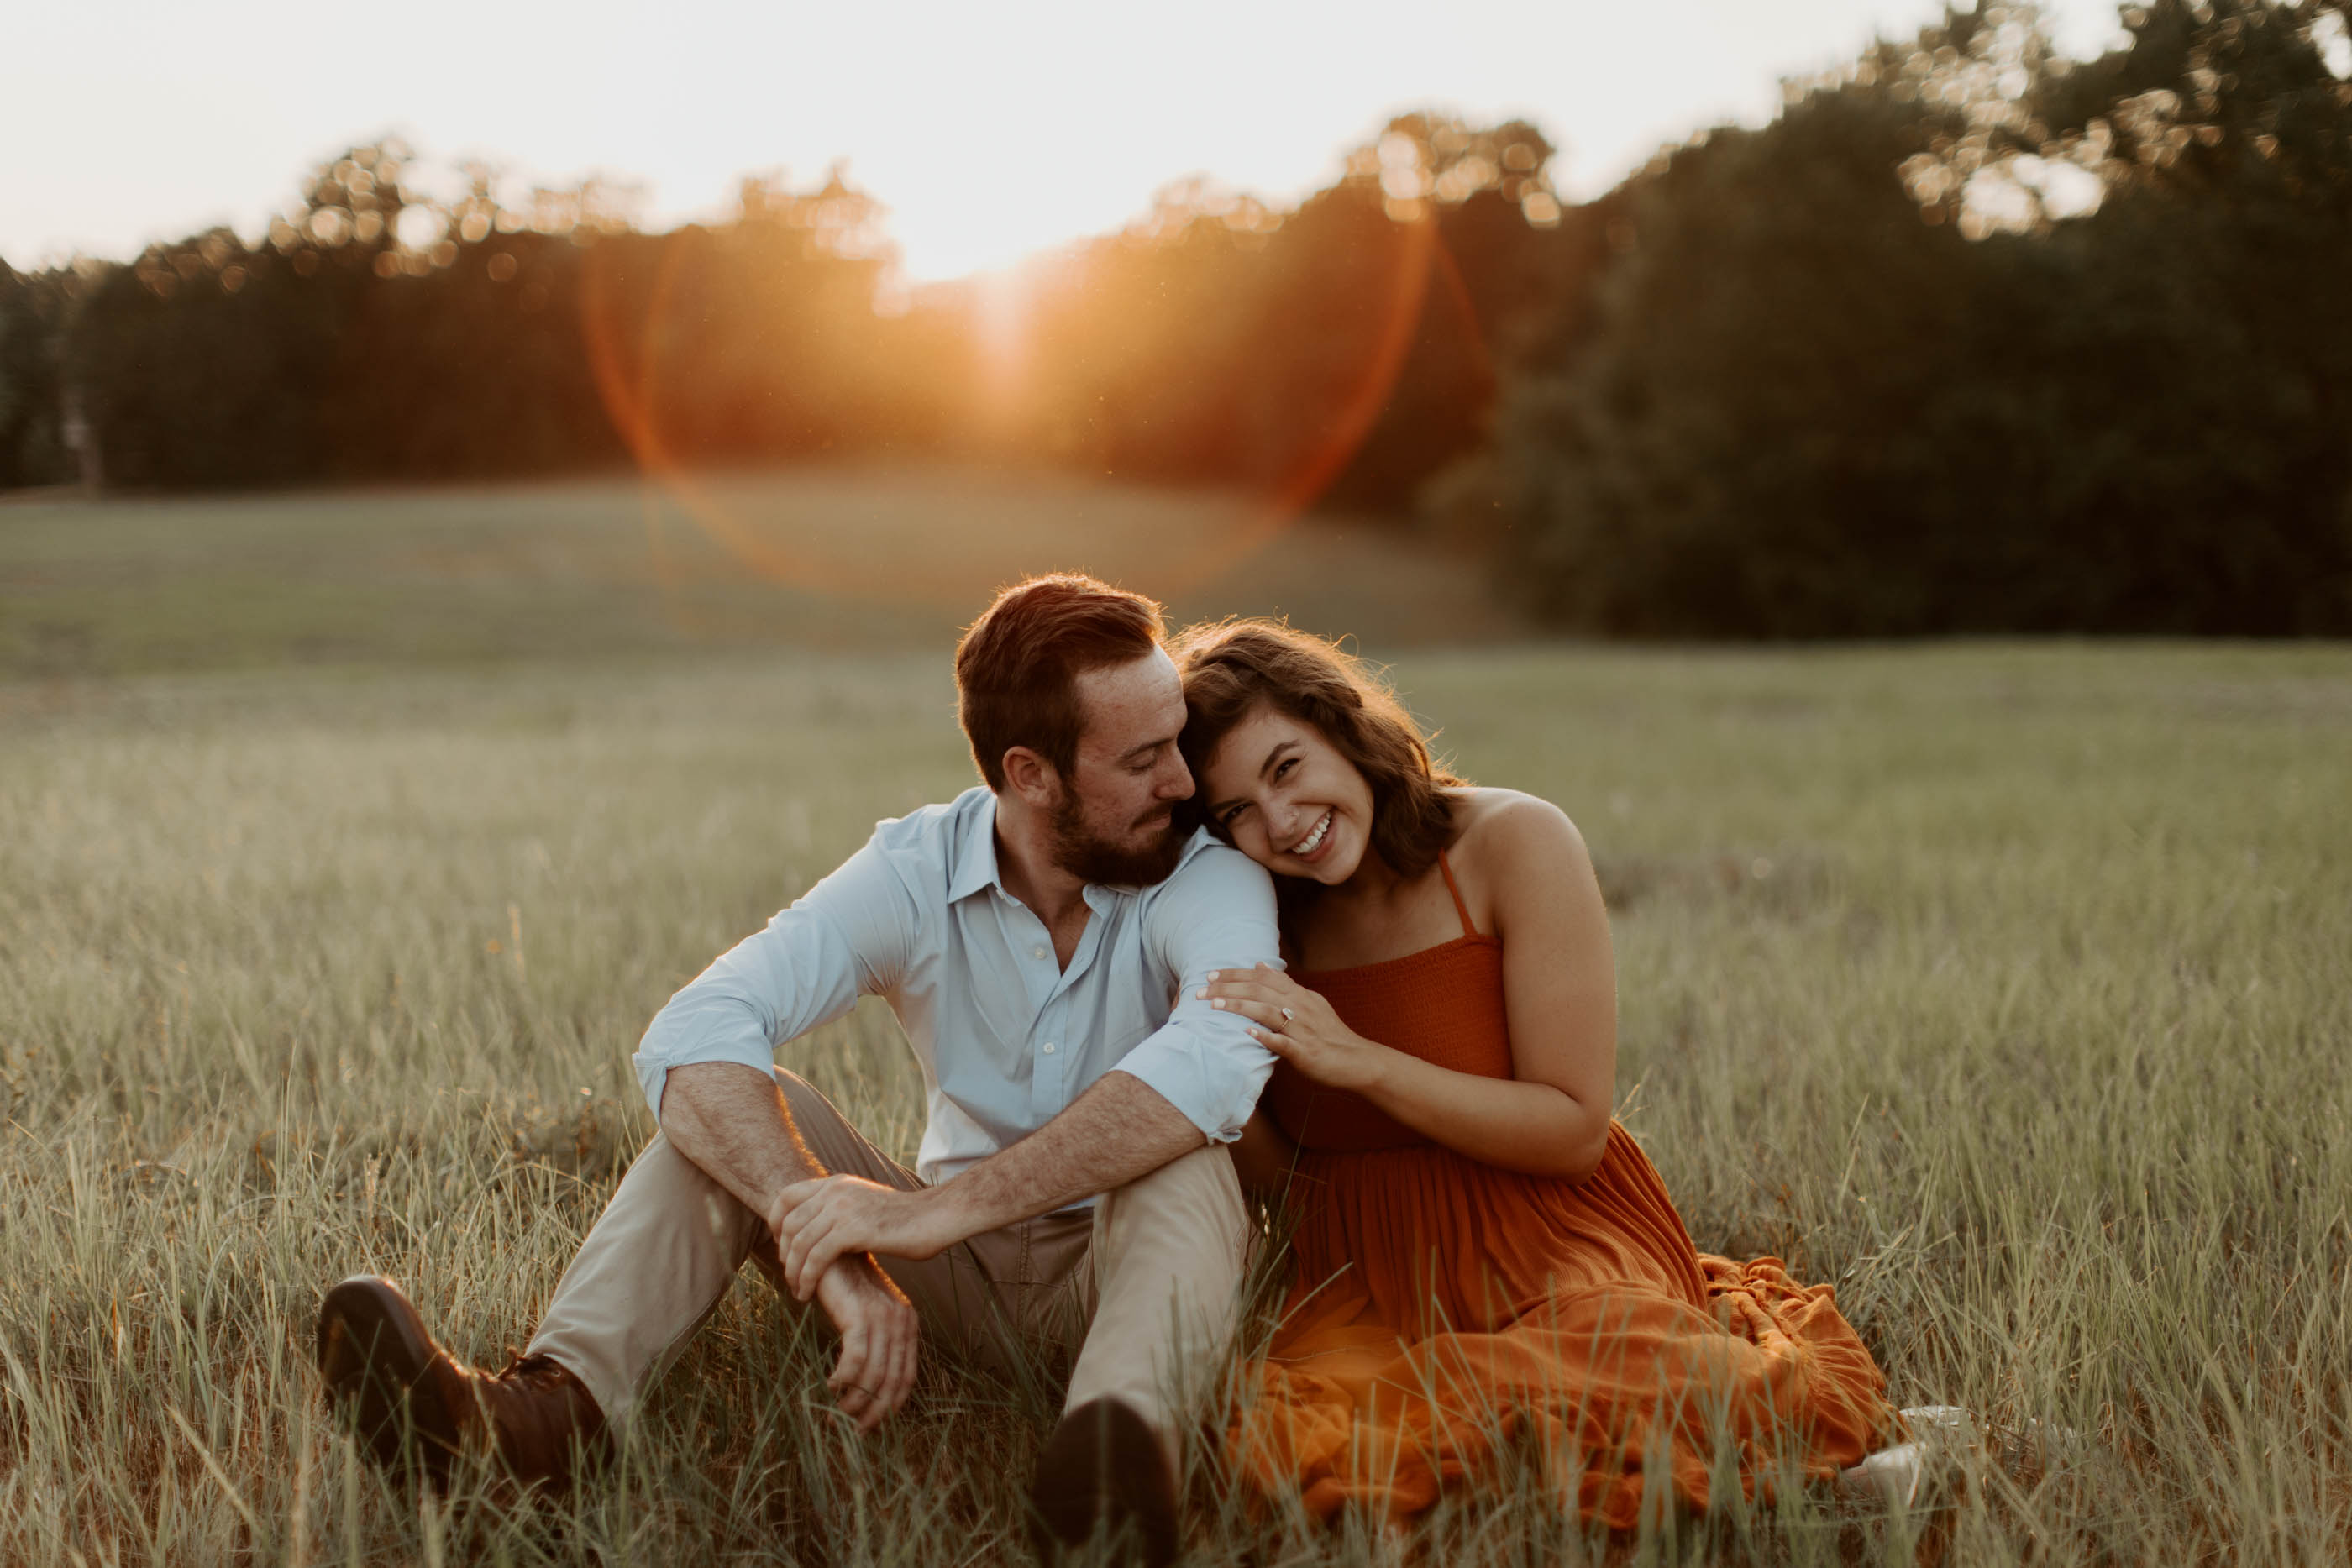 Engagement photography session example Marissa Merrill Photography